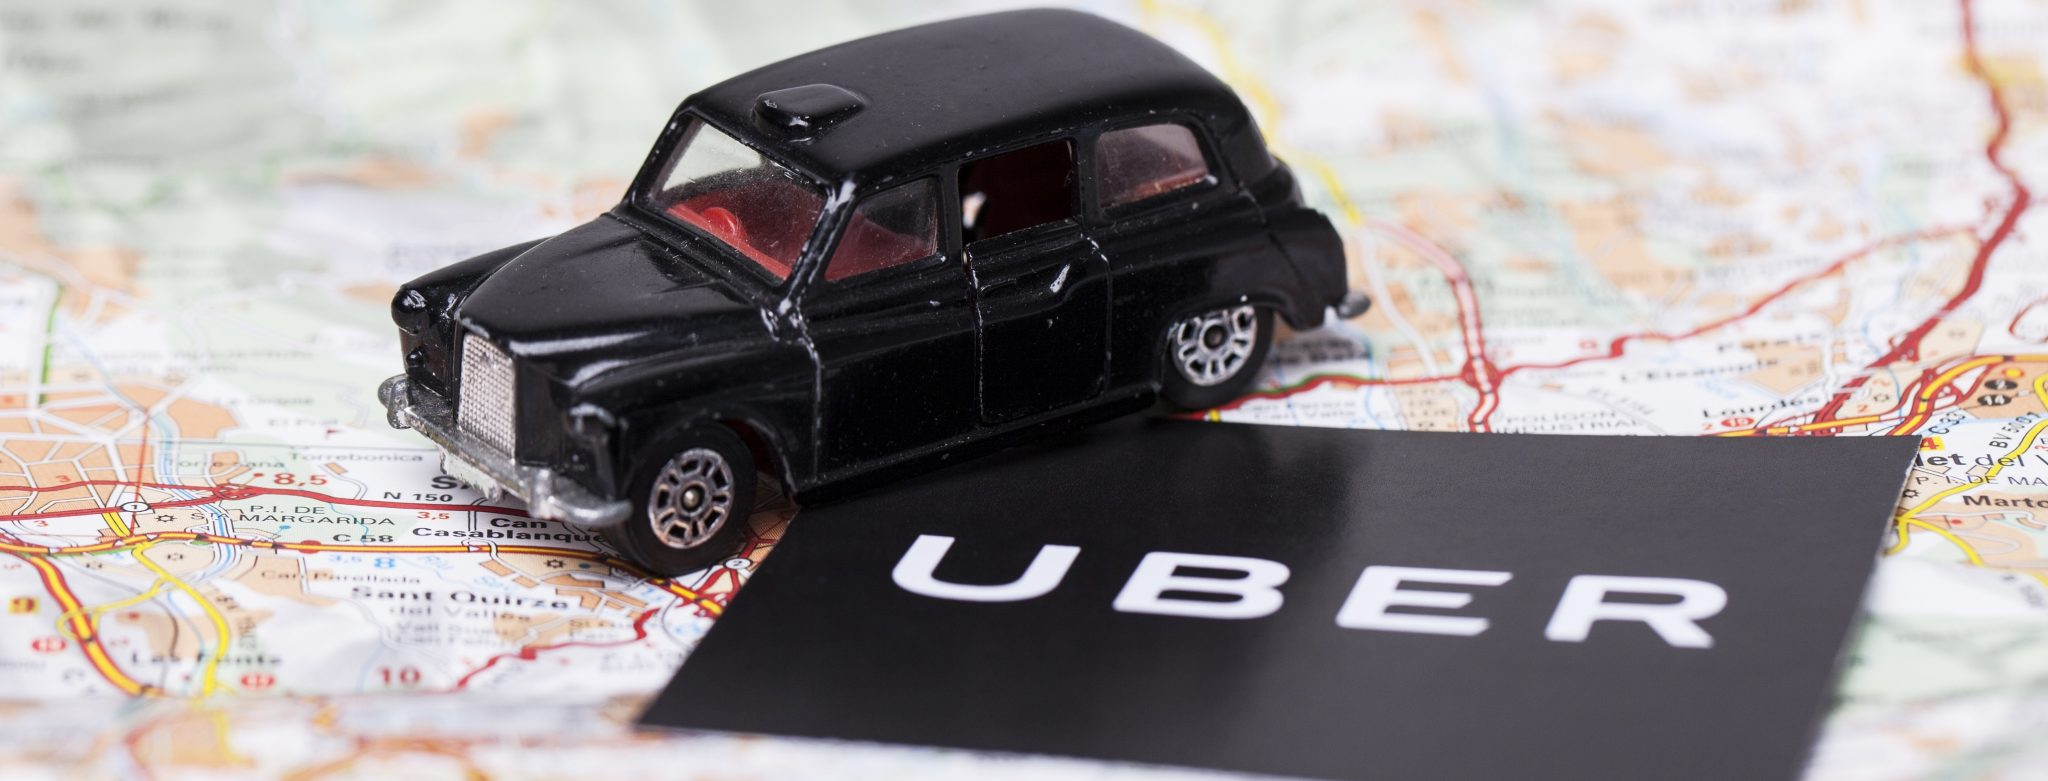 uber logo and toy car on map